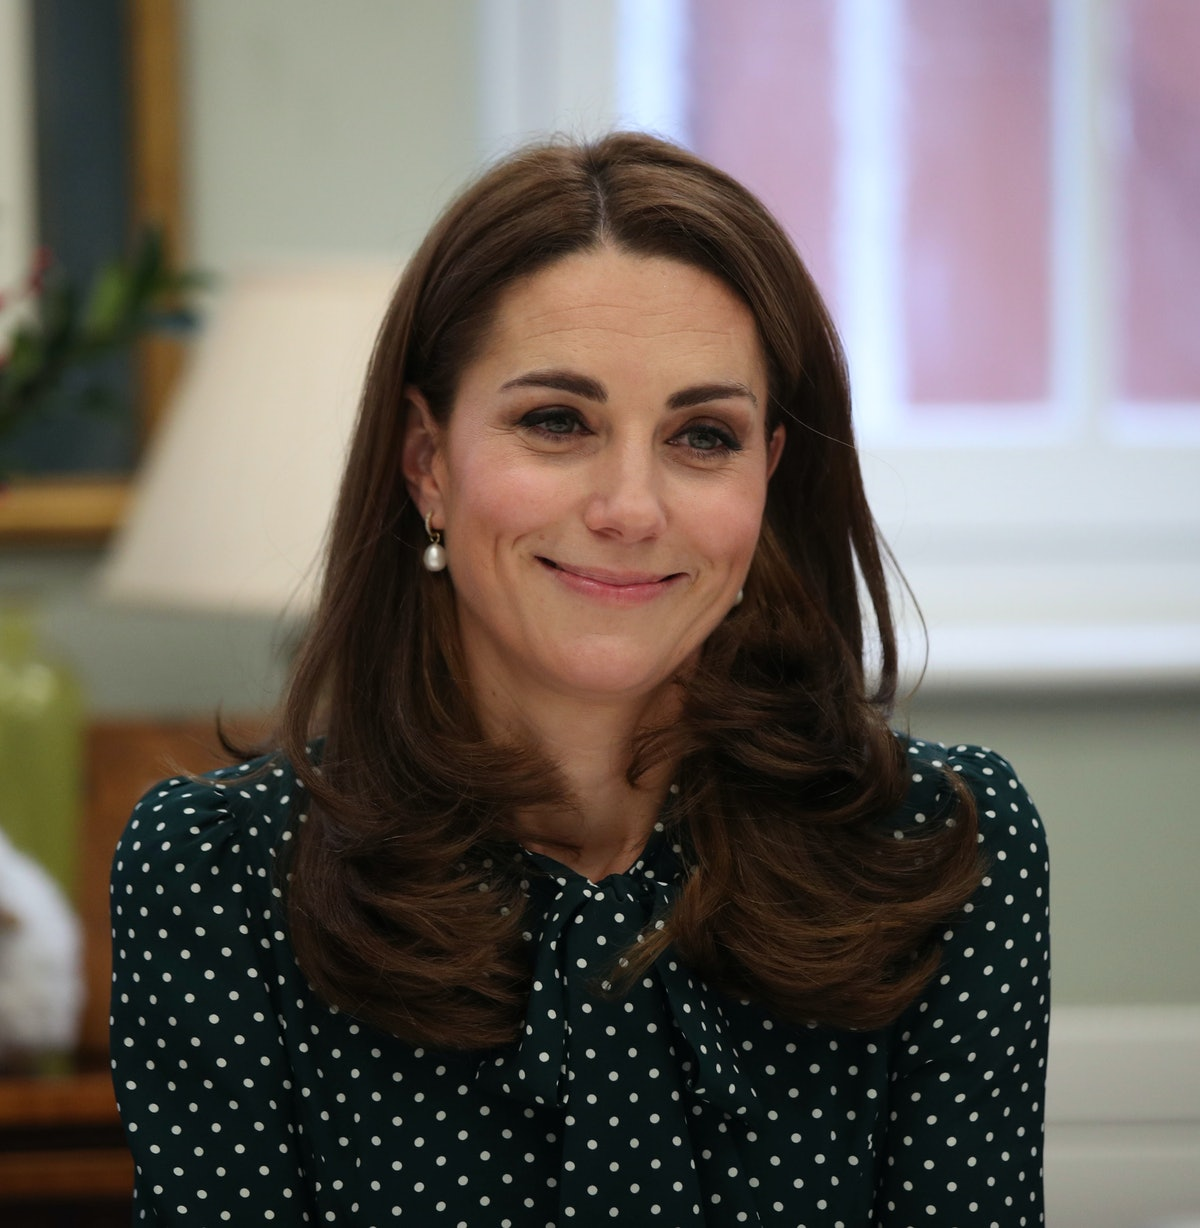 Kate Middleton Celebrated Her 37th Birthday With A Truly Intimate Family Affair & Yes, Prince William Was There